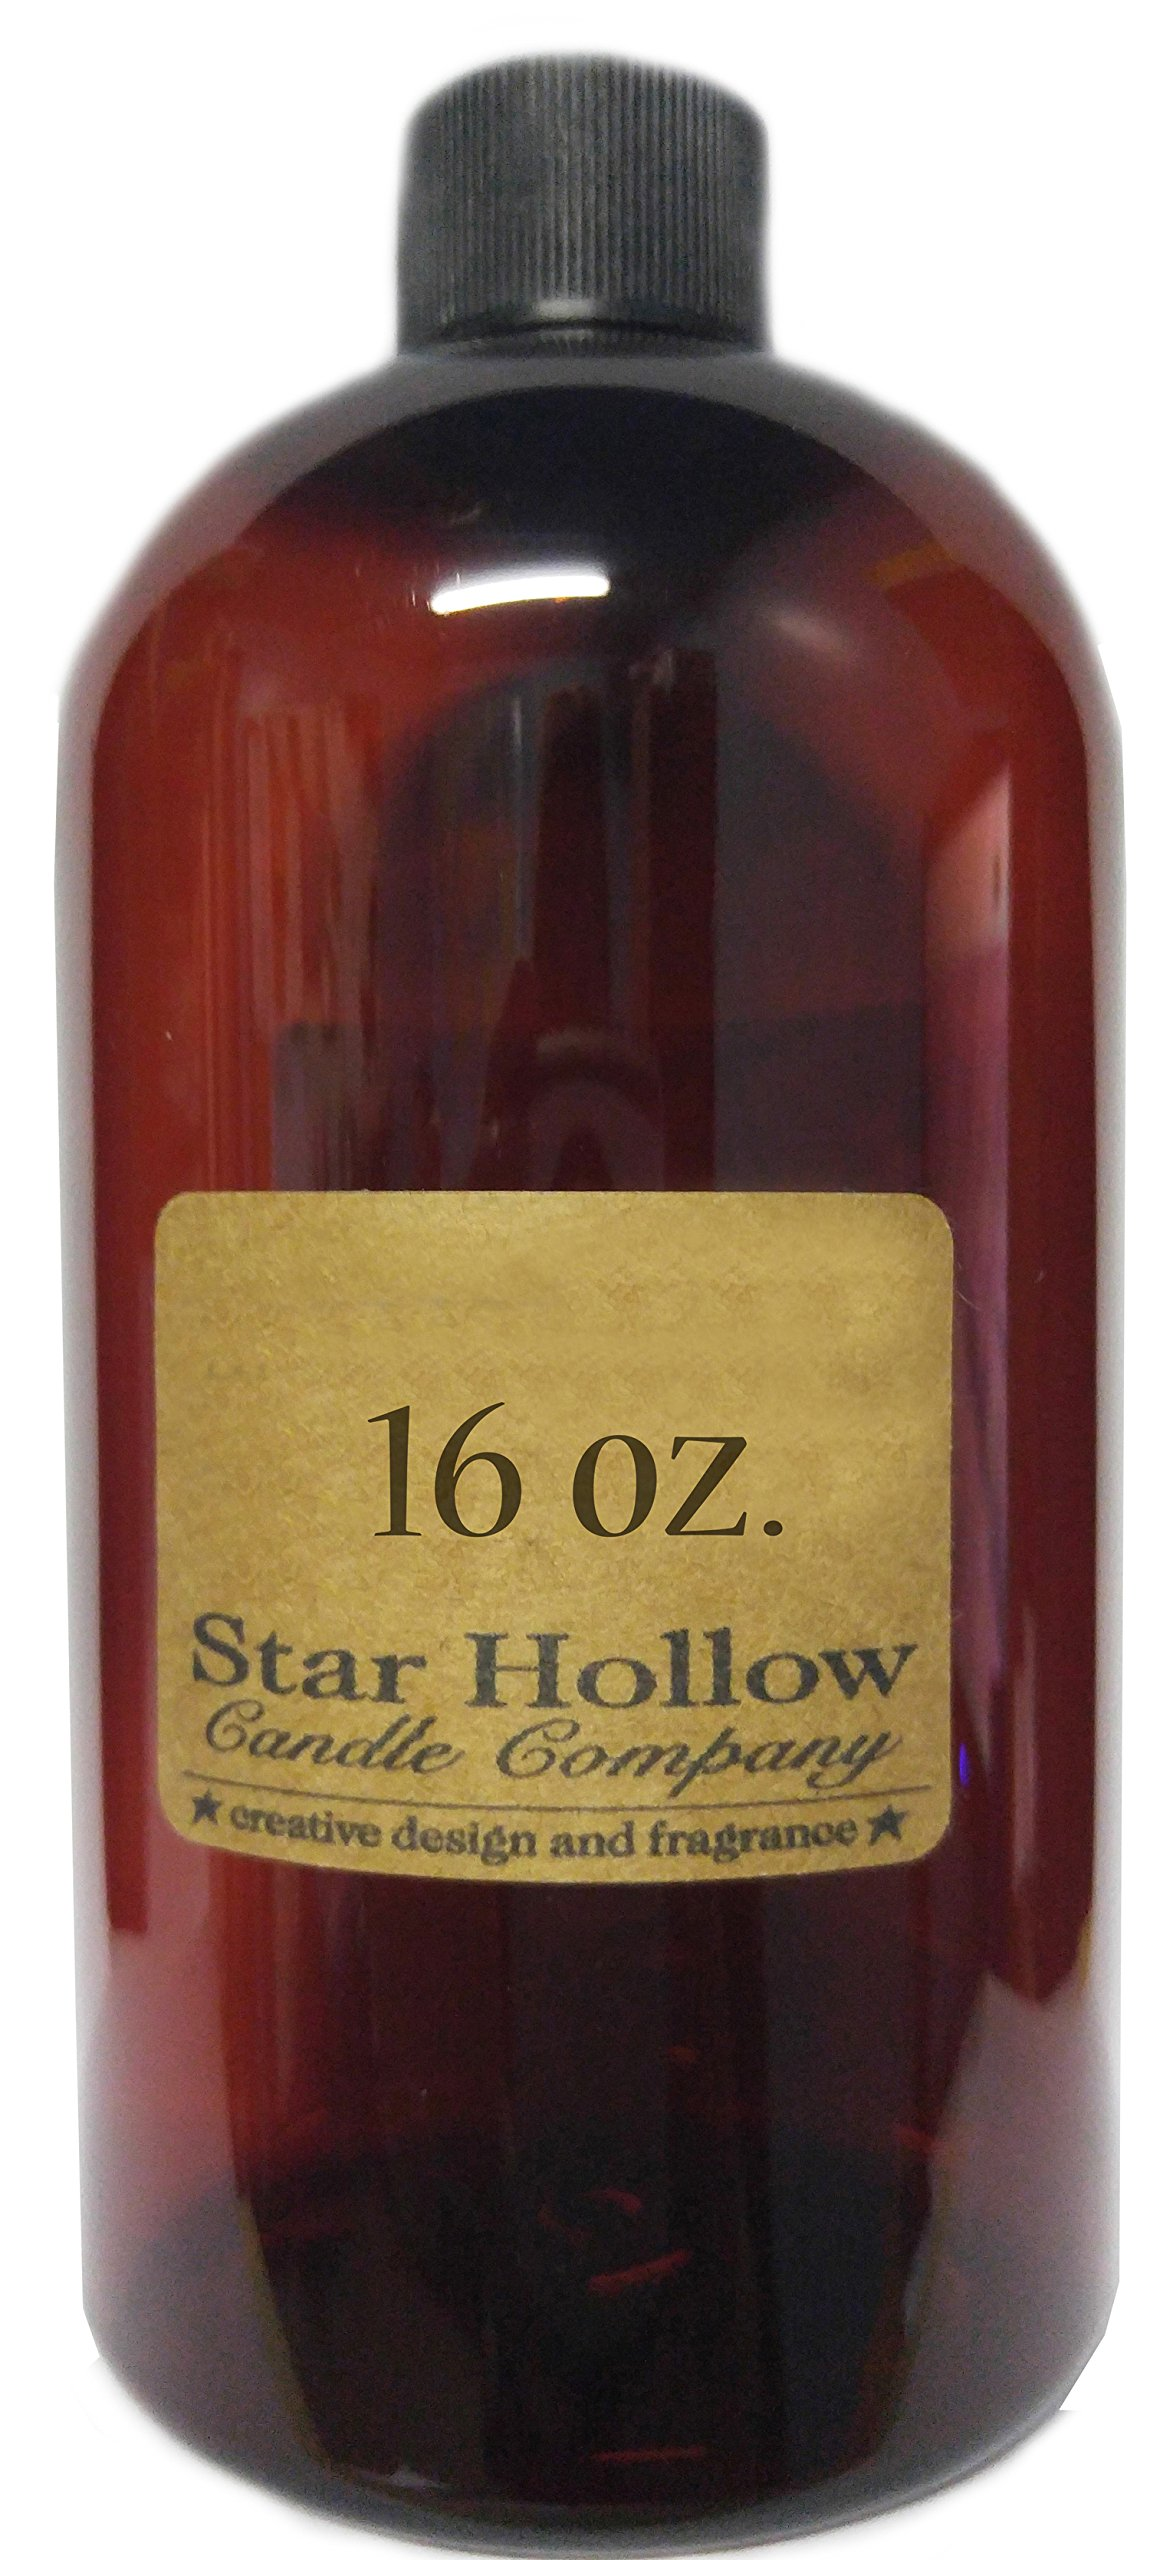 Star Hollow Candle Co Tuscan Vineyard Fragrance Oil, 16 oz, Brown by Star Hollow Candle Co